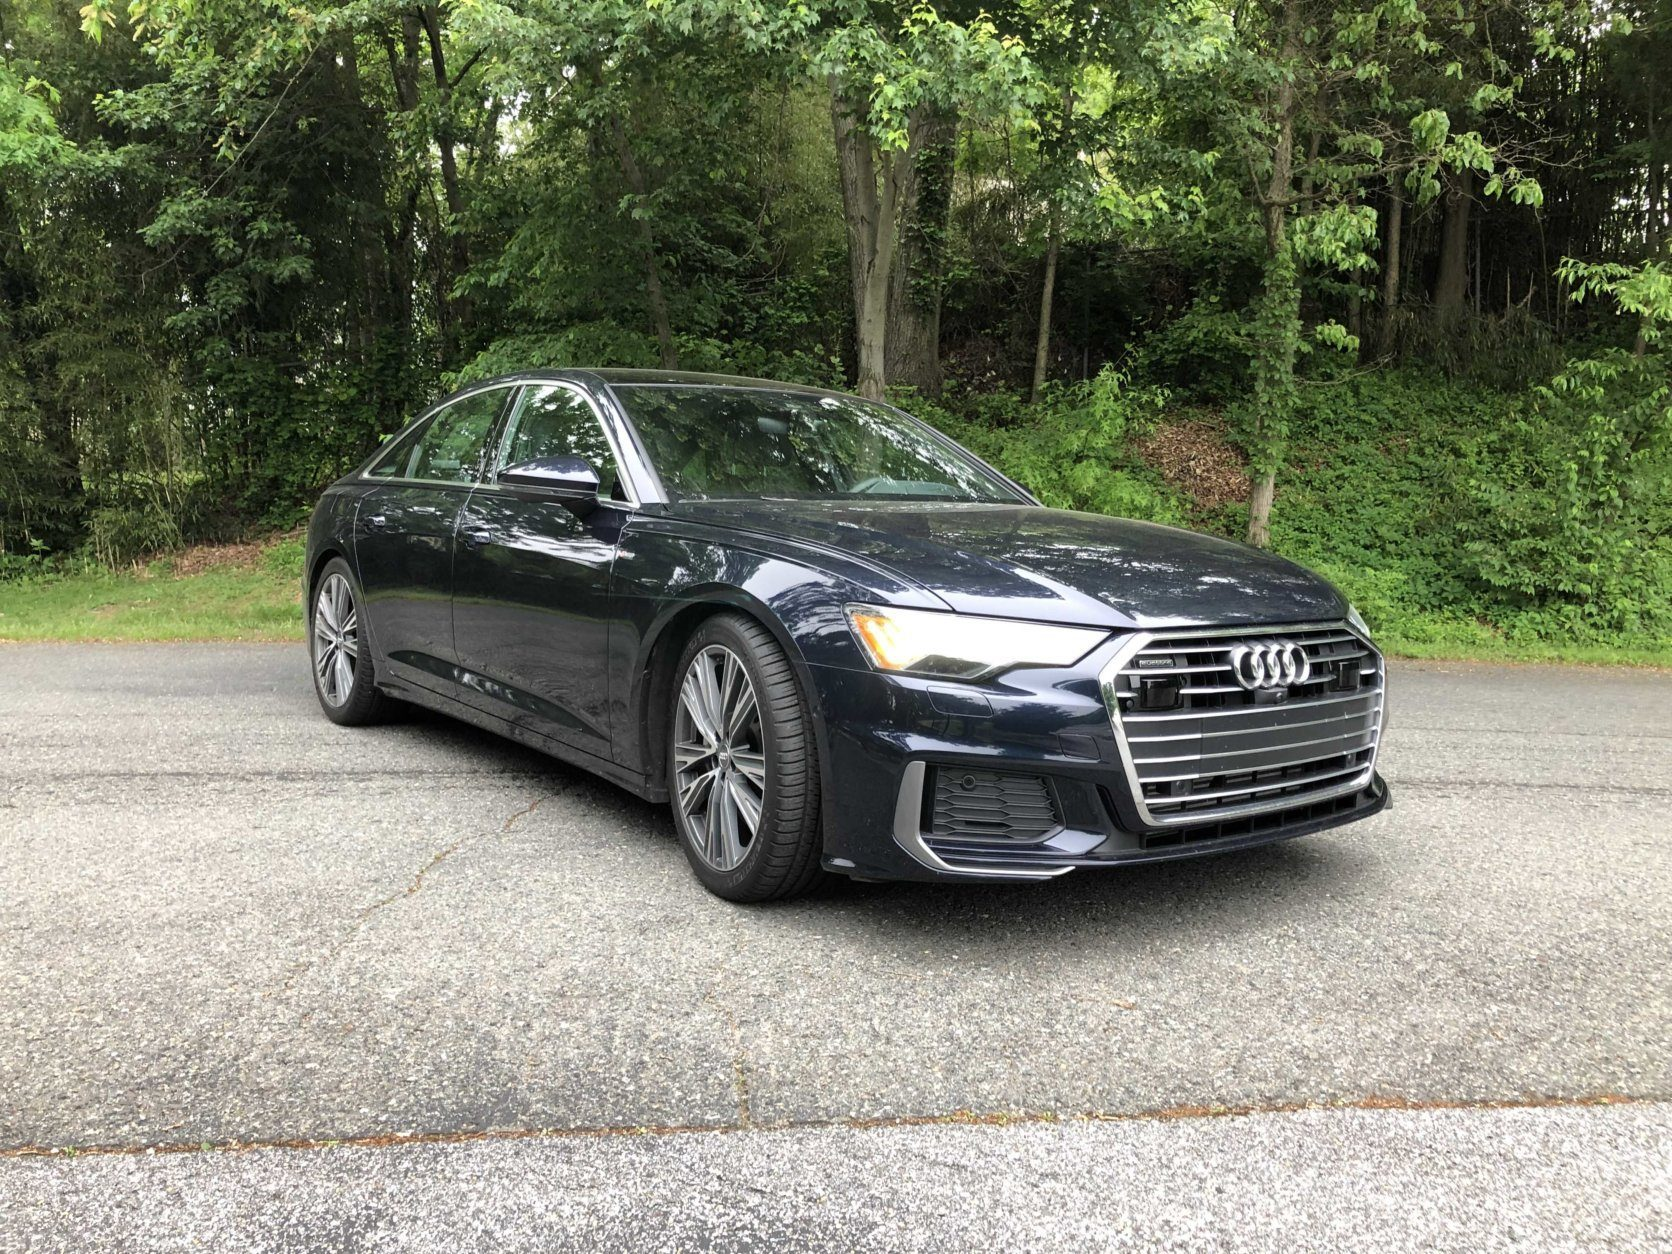 The new 2019 Audi A6, fully loaded for $77,000. (WTOP/Mike Parris)